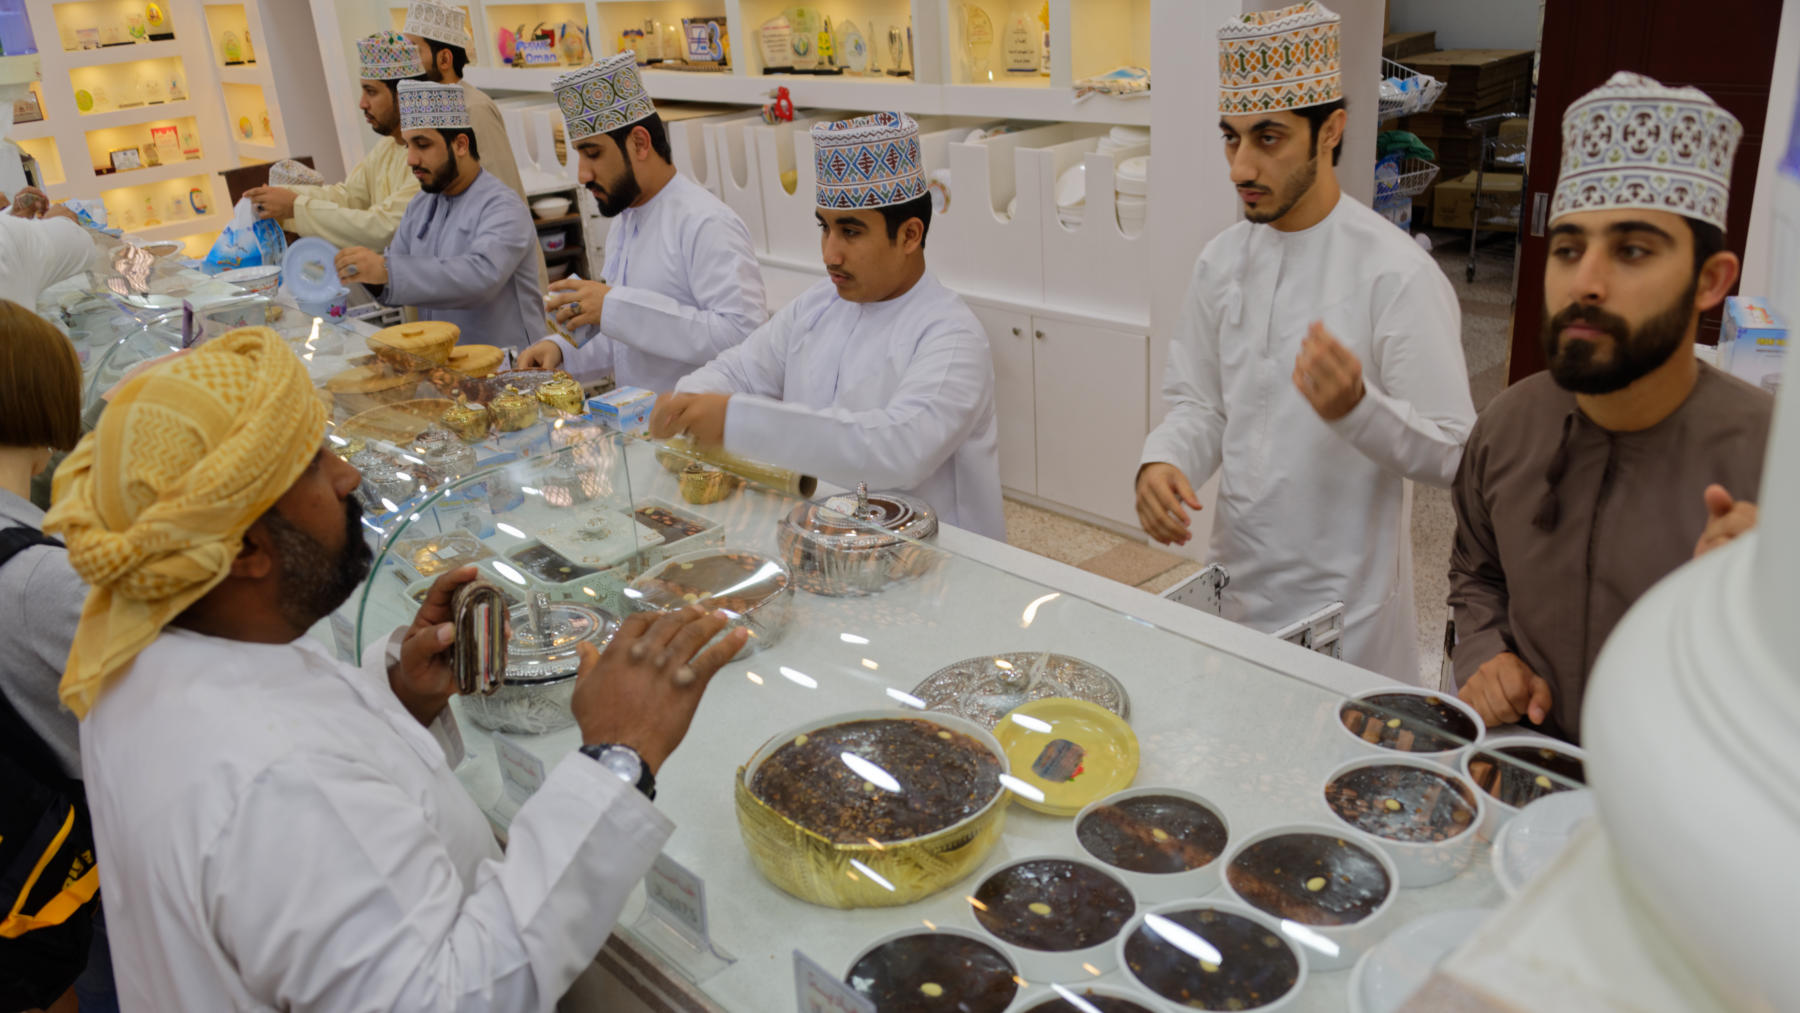 Buying Halwa, Nizwa Souq, Oman